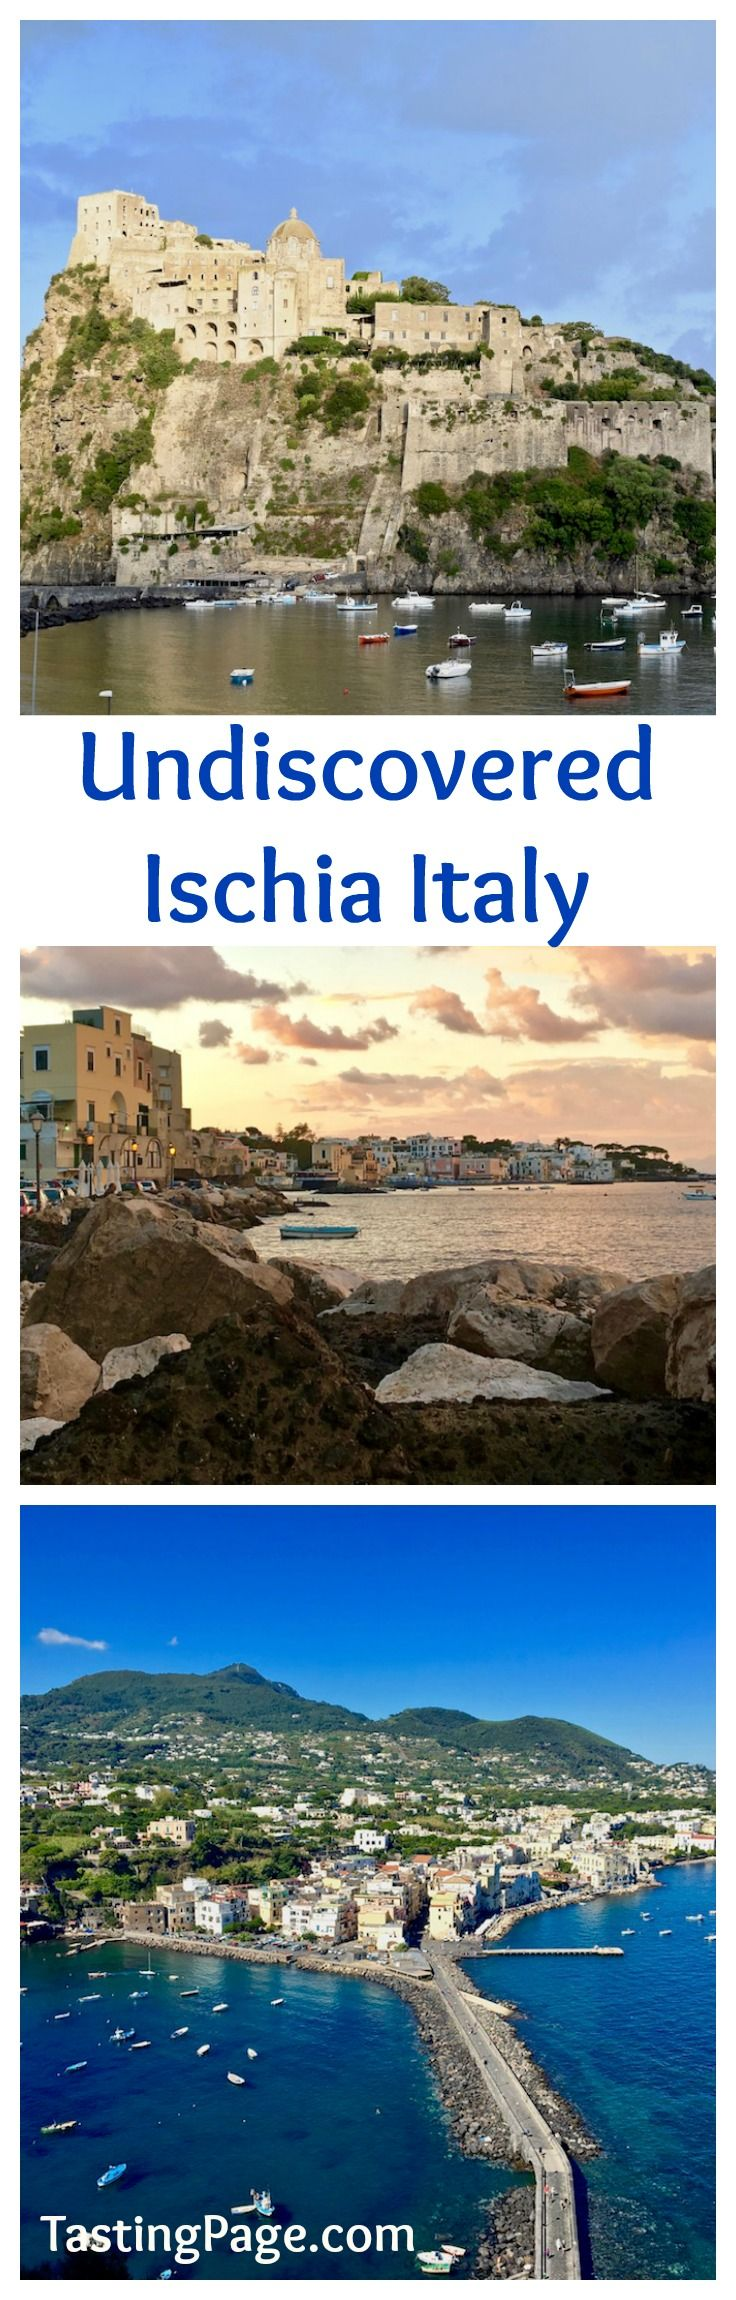 Skip overrun Capri for the more undiscovered and unassuming island of  Ischia Italy. Ischia's food, wine and thermal spas make it a great stop  when visiting Southern Italy.